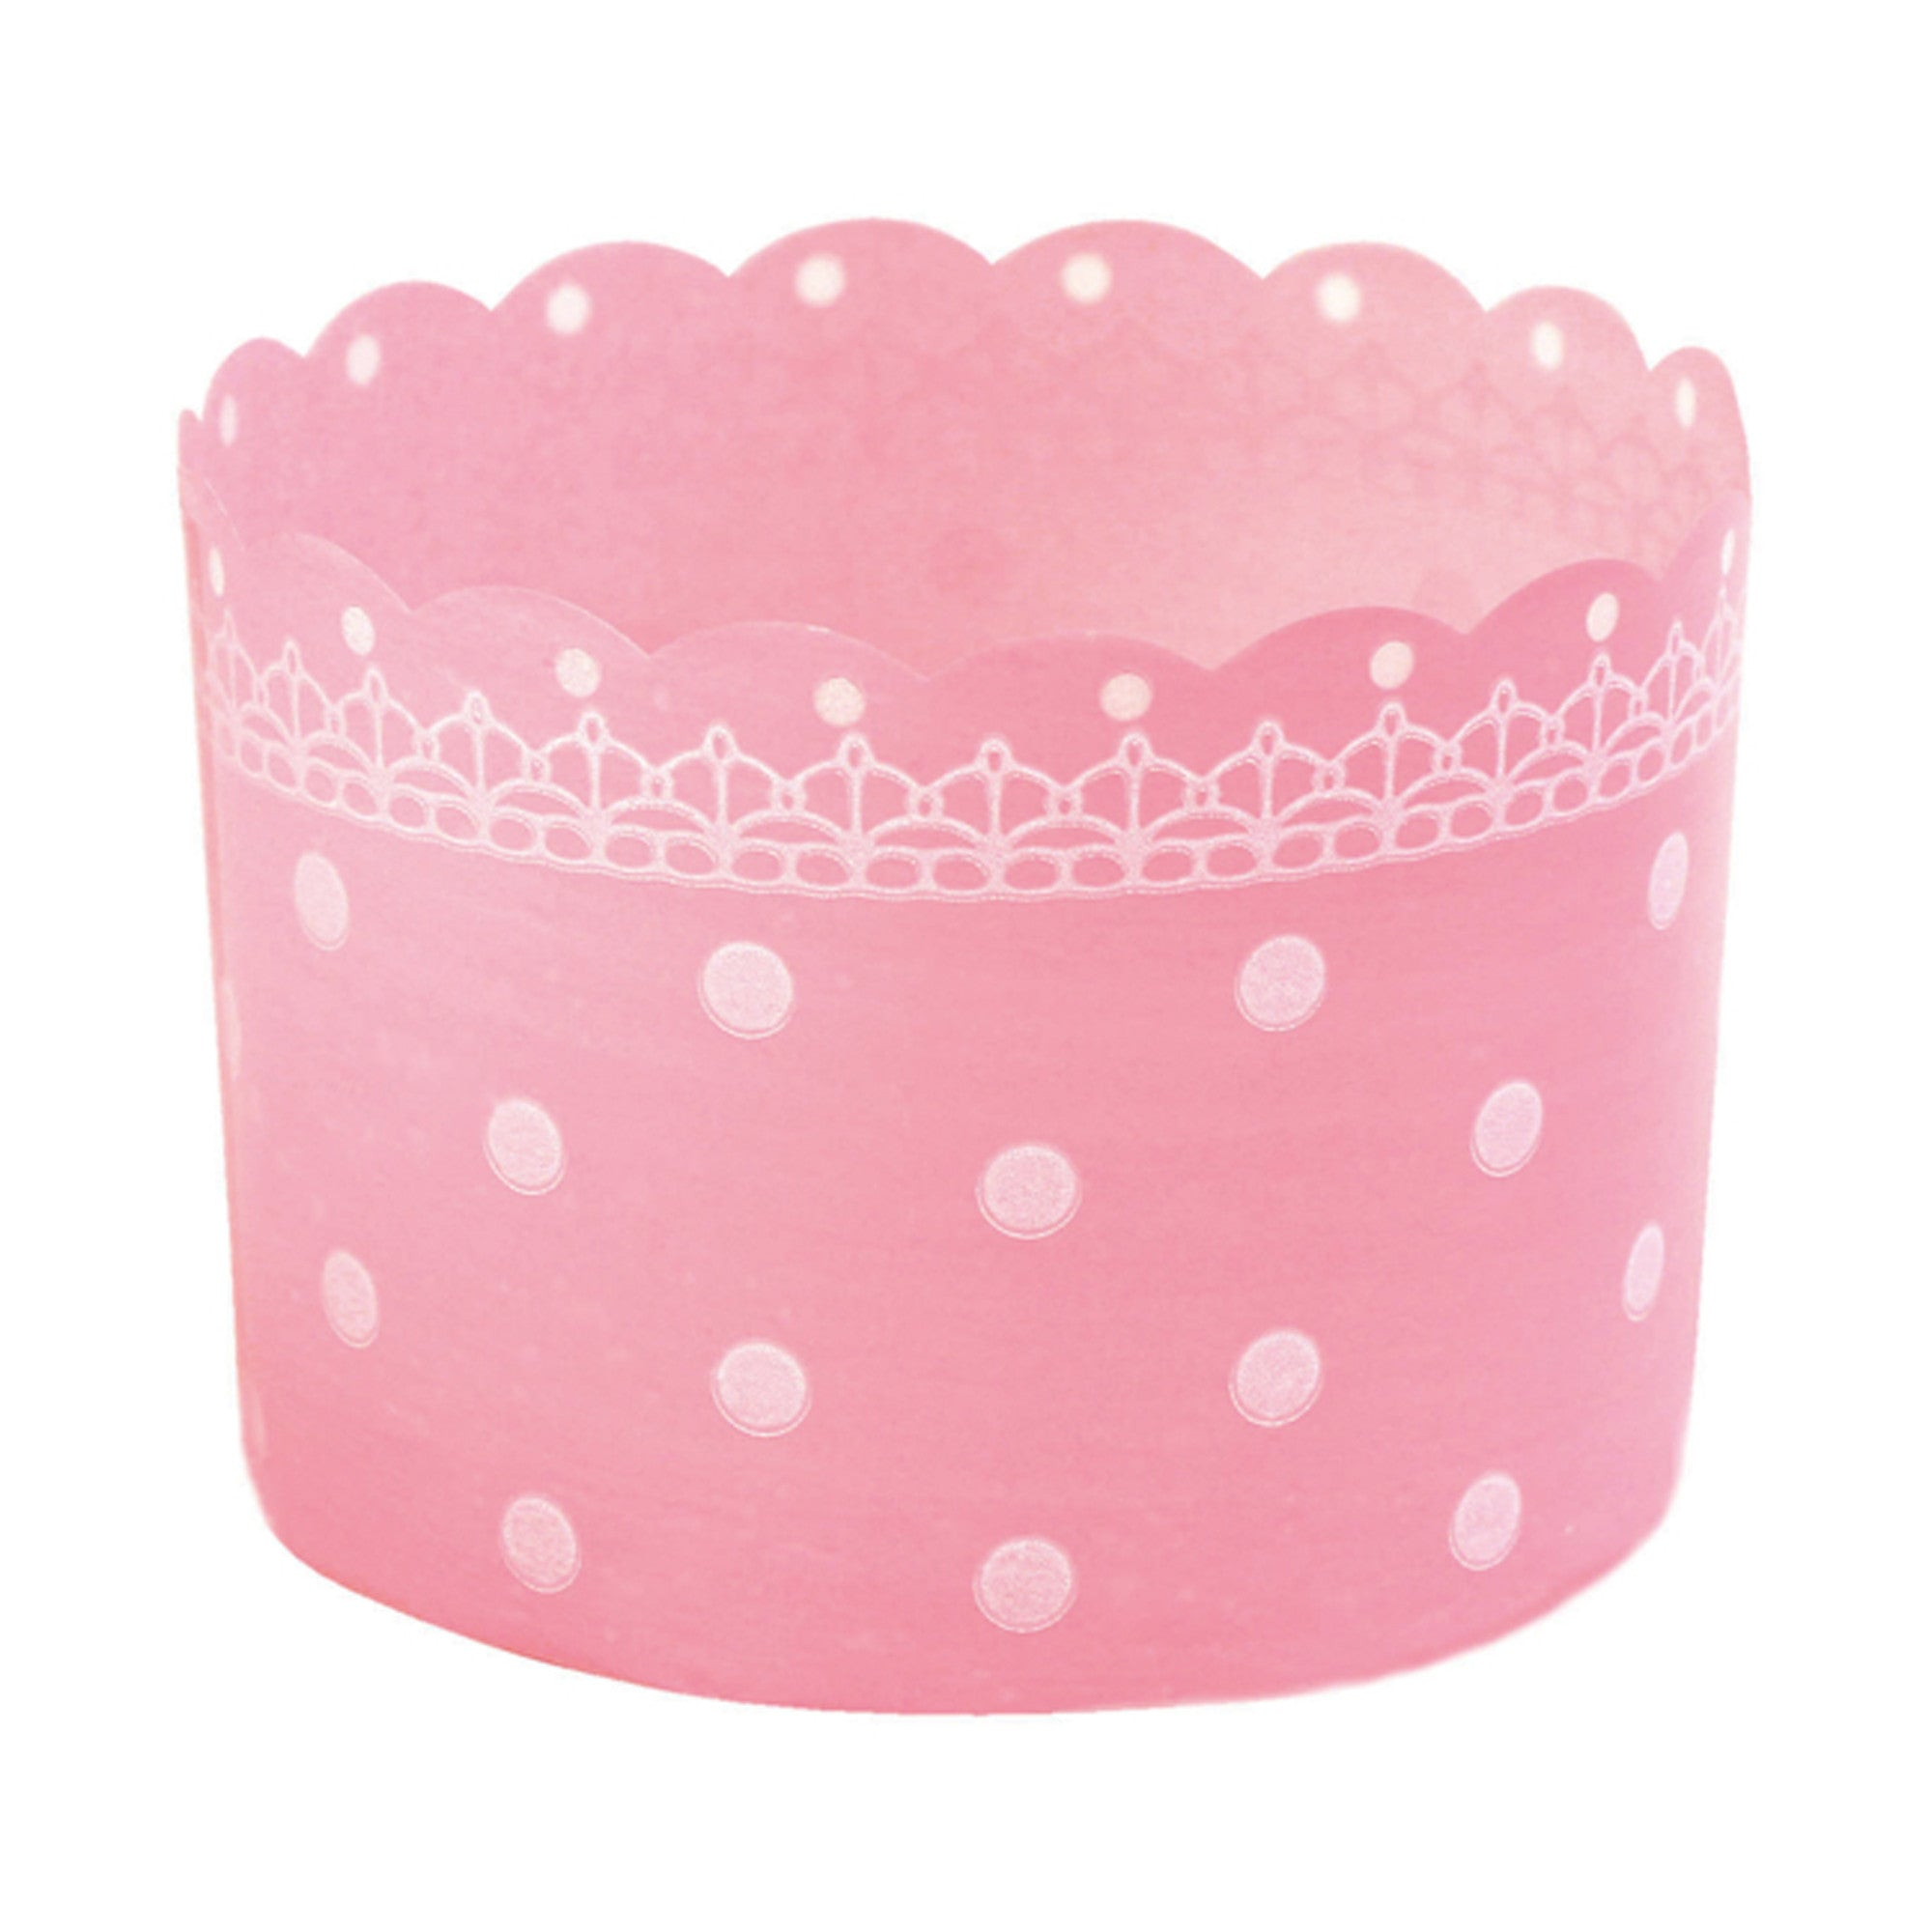 Plastic Baking Cups, Polka Dot Pink - Welcome Home Brands